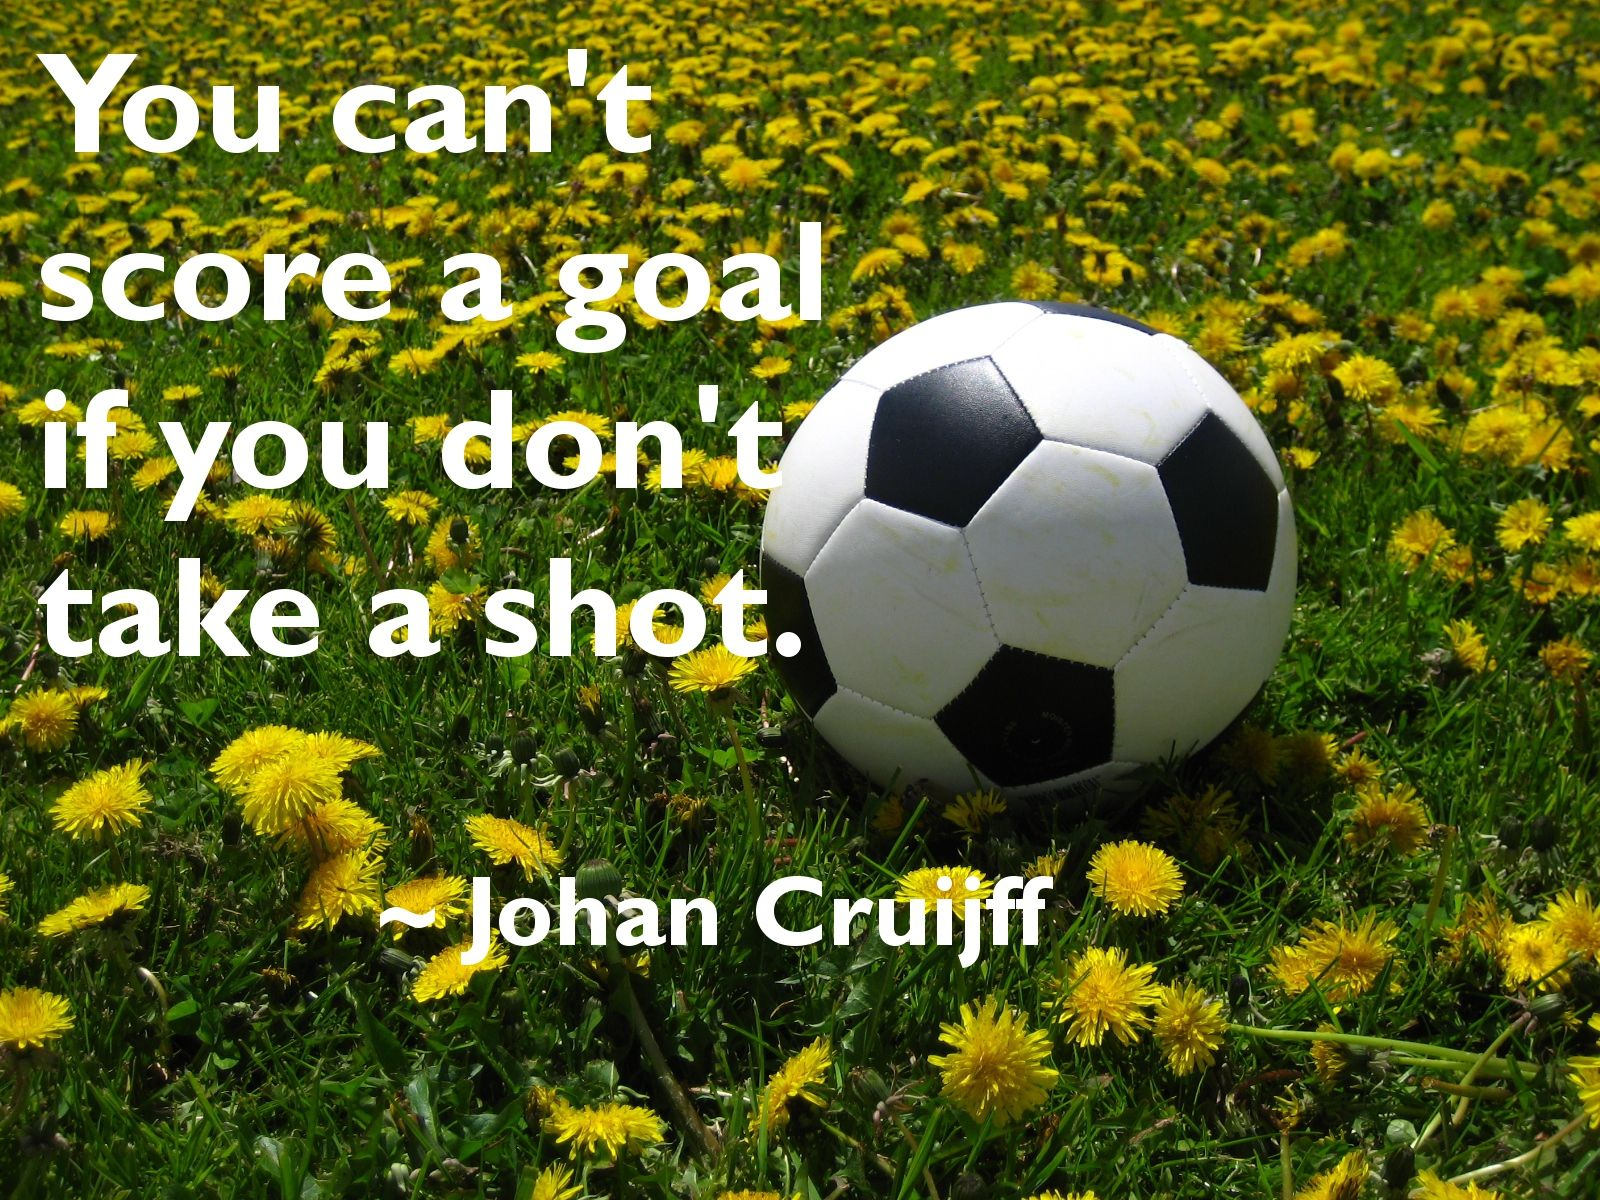 Soccer Quote Love This Quotealways Reminds Me That You Can't Be Successful